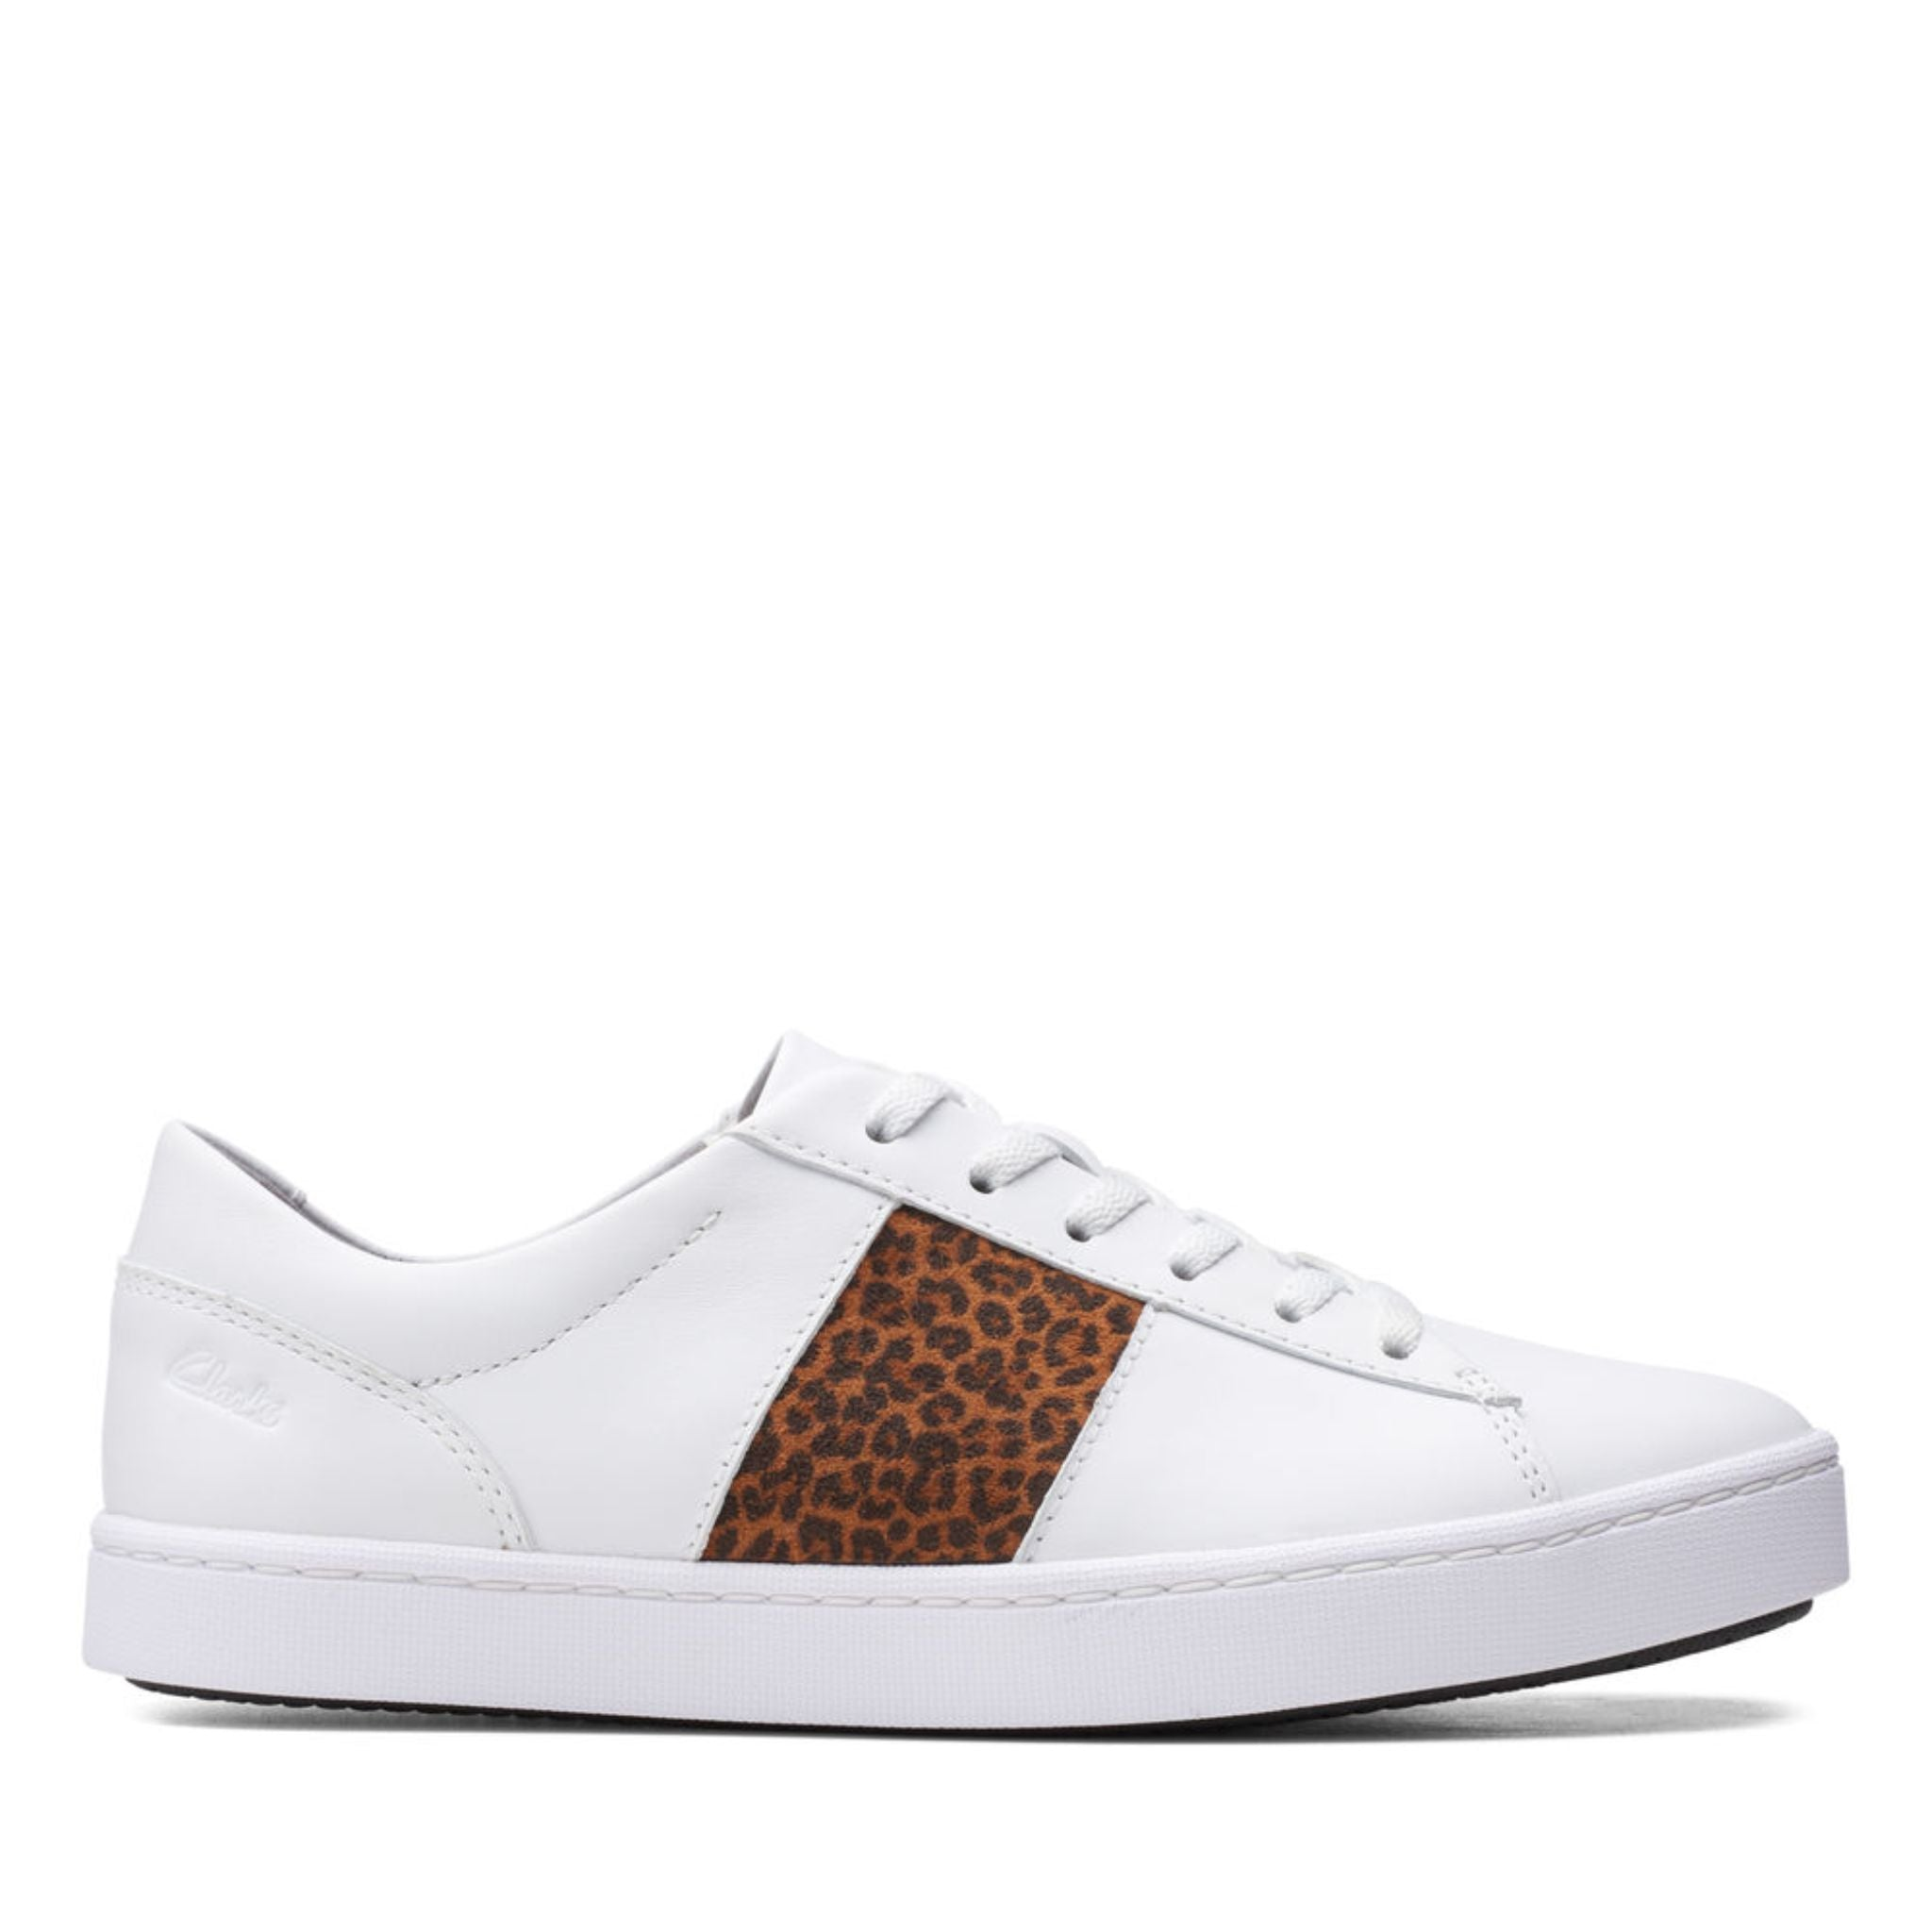 Clarks Collection Pawley Rilee White Leather/ Leopard Combi